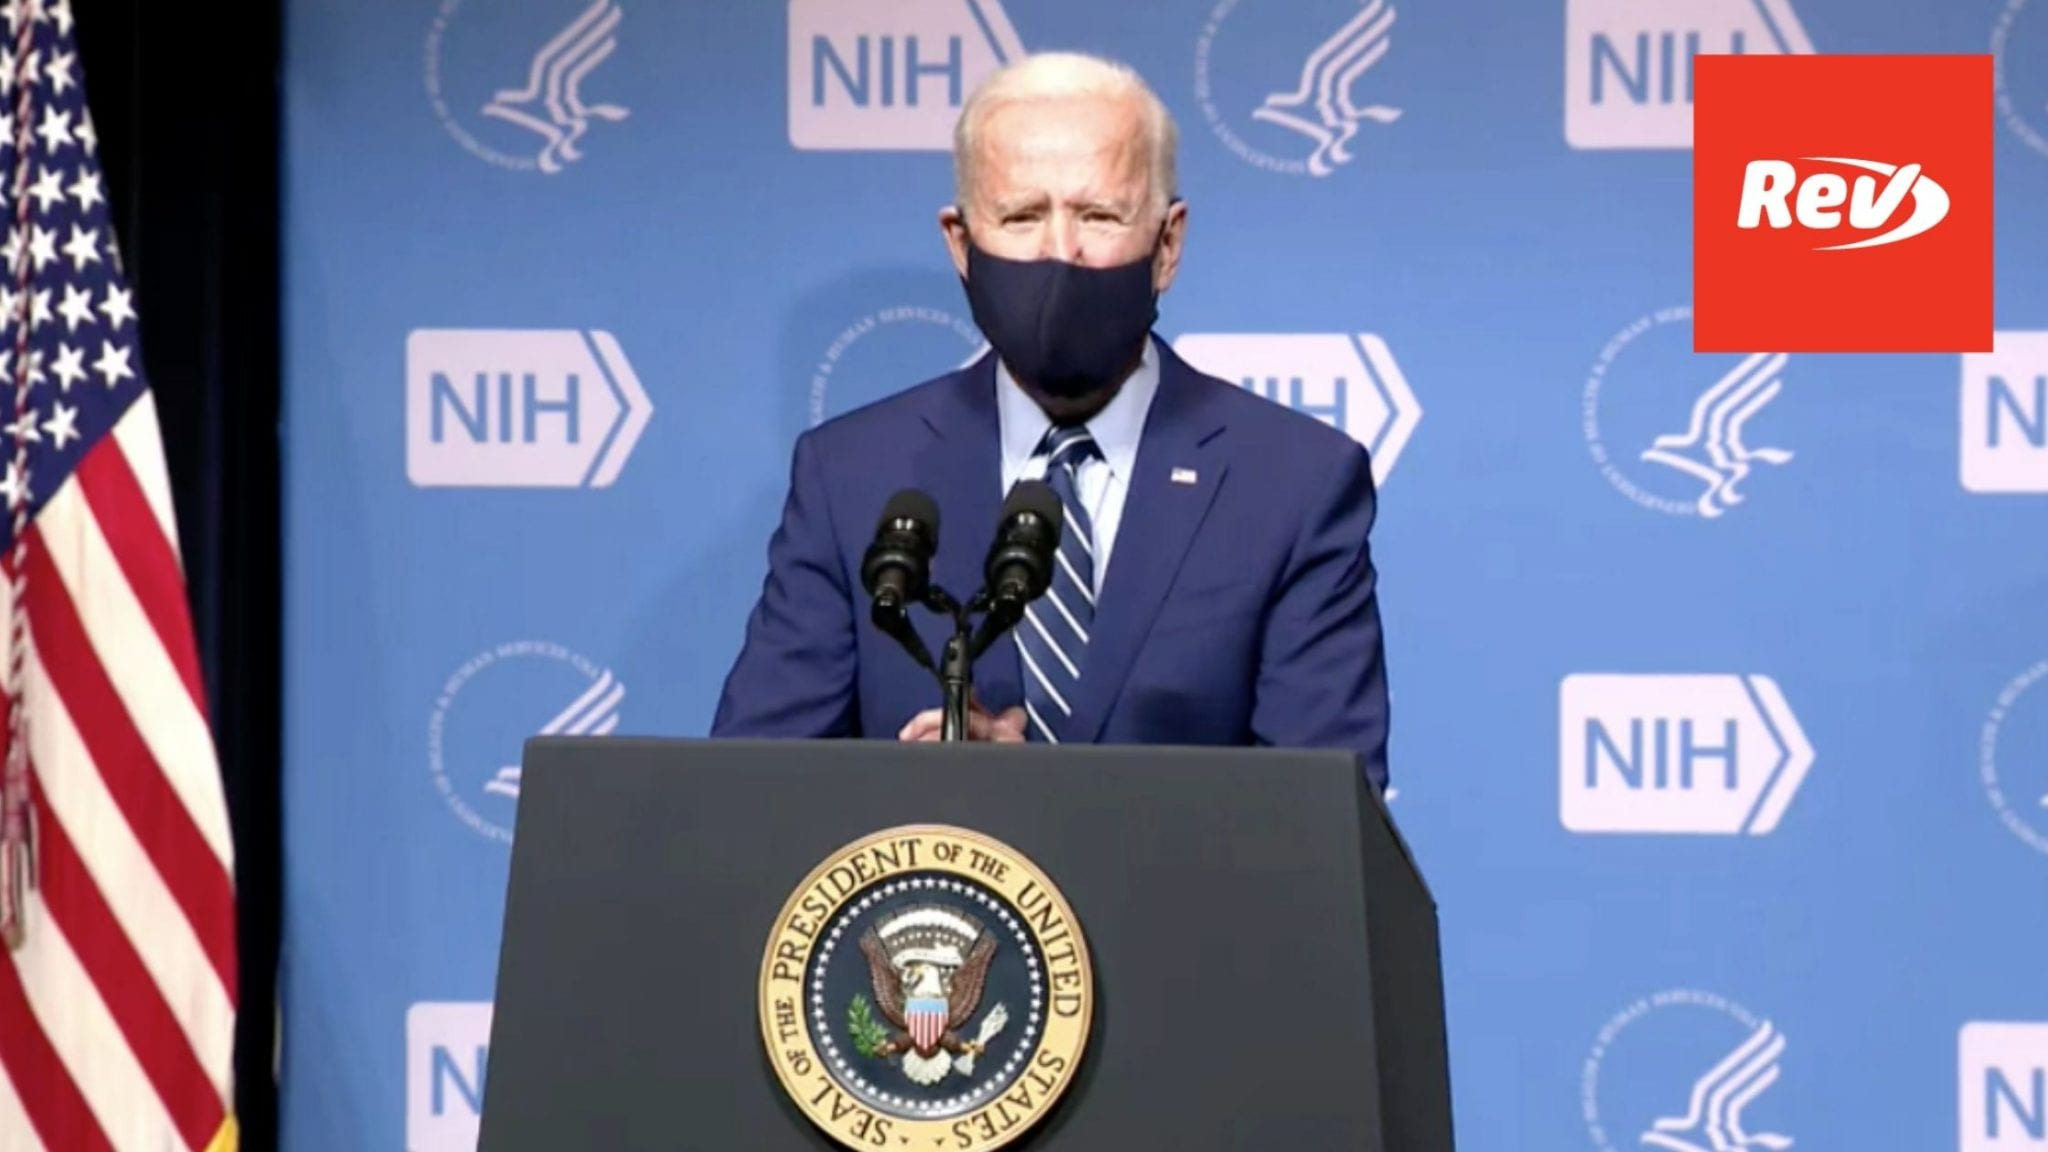 Joe Biden Speech at National Institute of Health (NIH) Transcript February 11